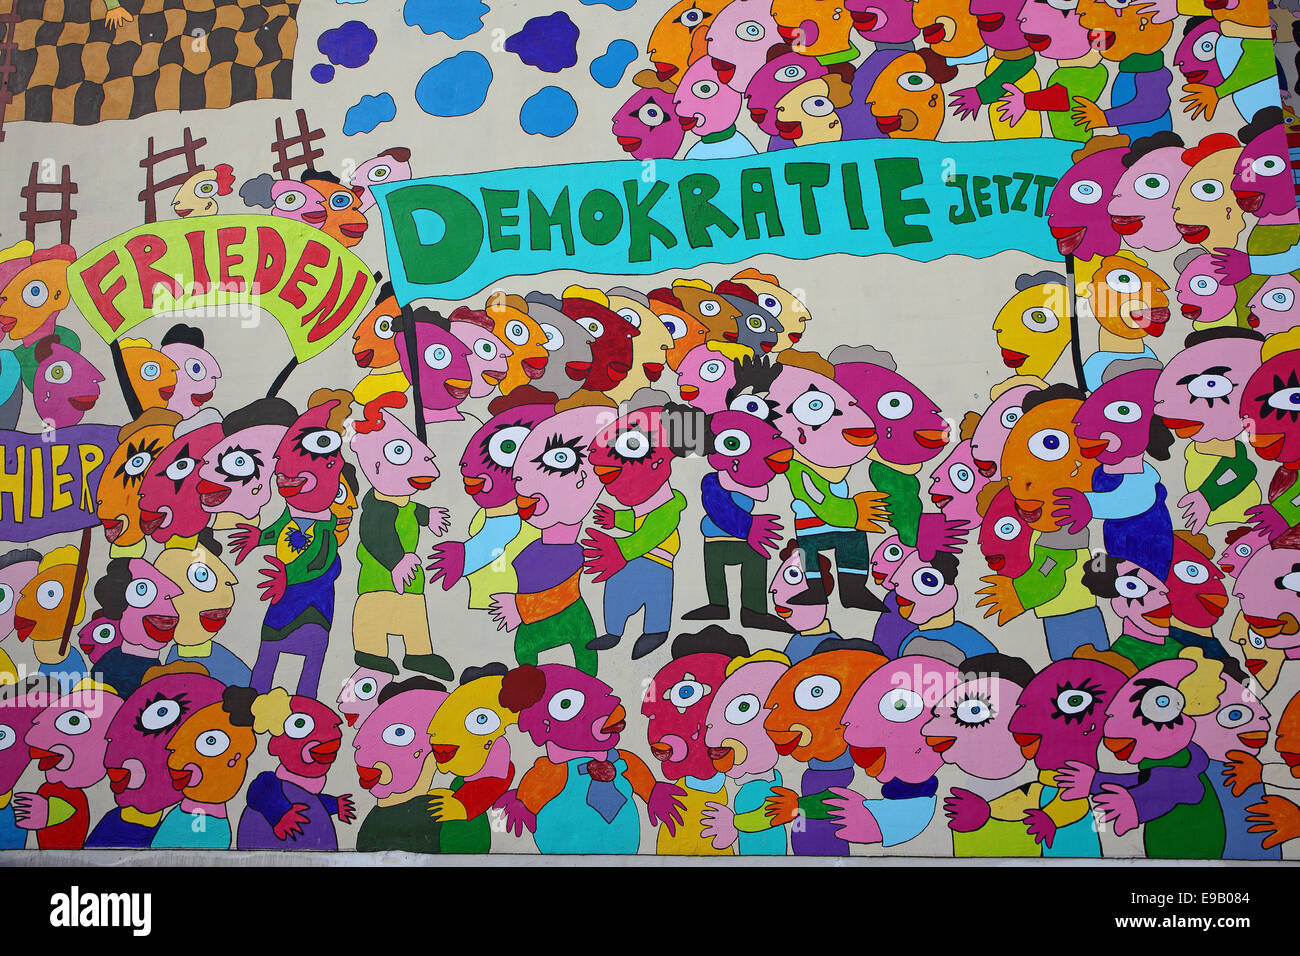 Colourful mural with the words 'Frieden' and 'Demokratie jetzt', German for 'Peace' and - Stock Image